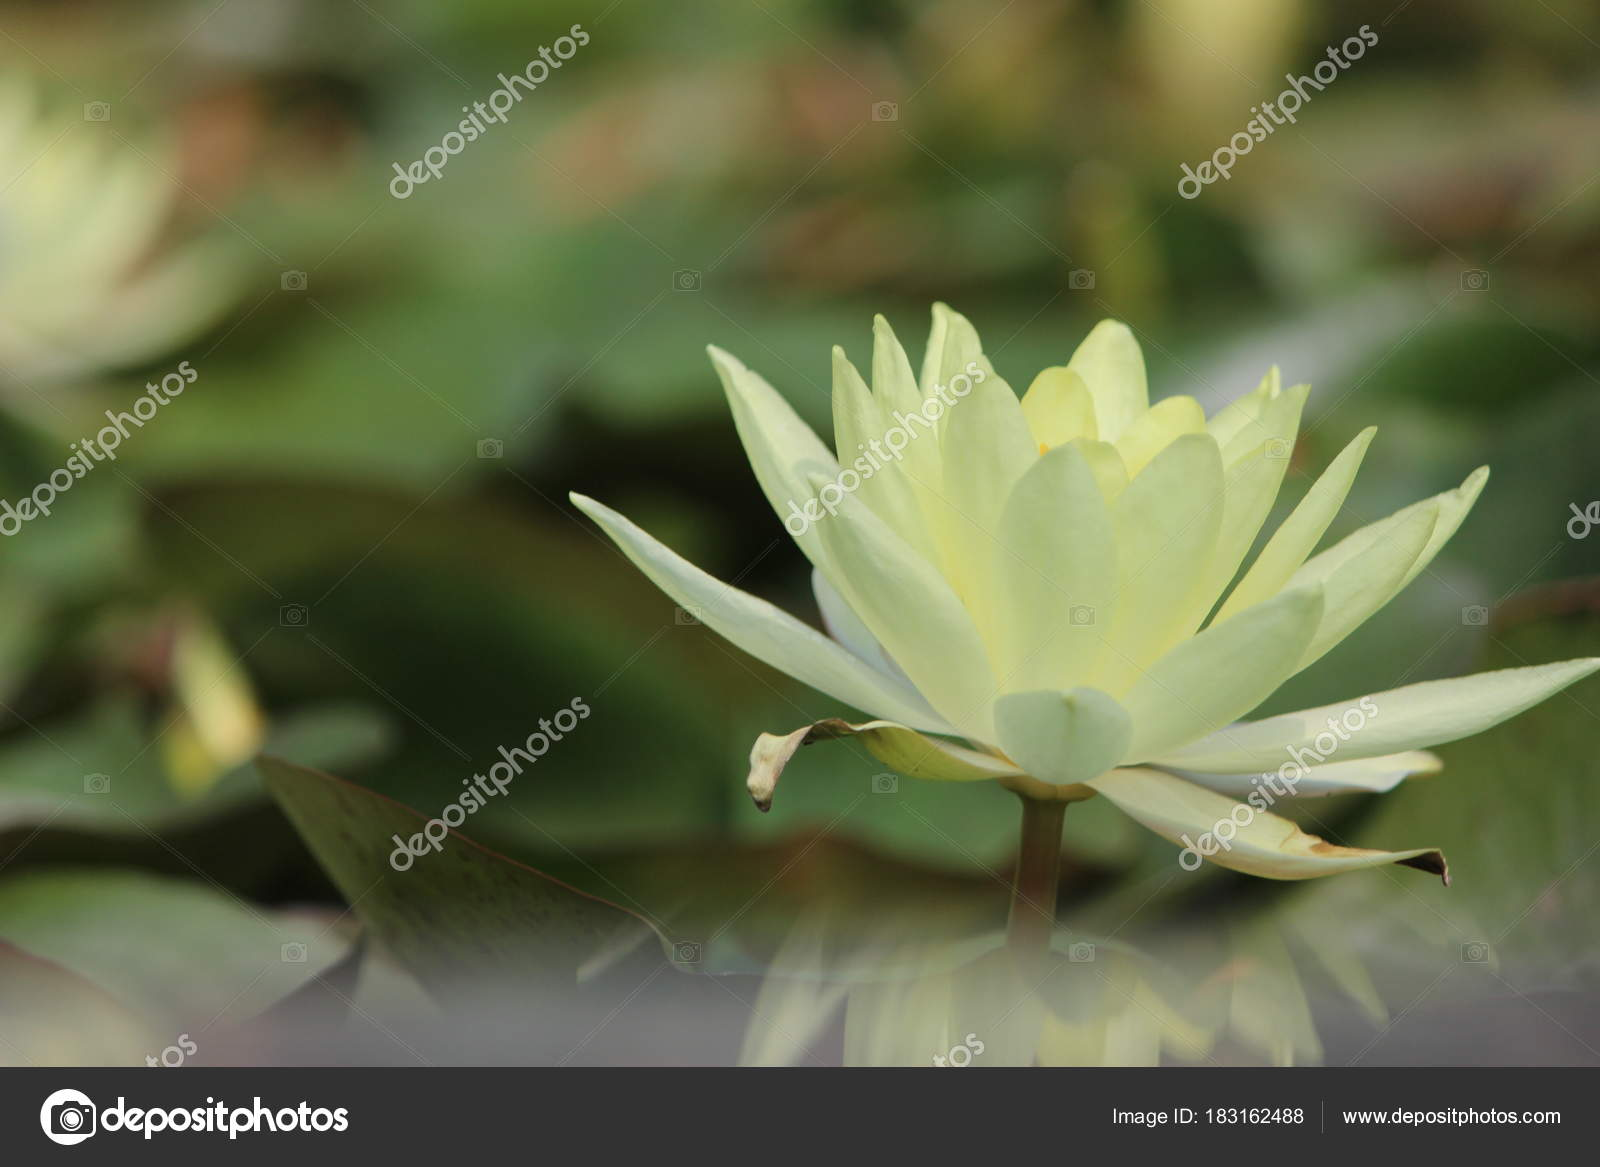 Green lotus flower pond looking awesome what beautiful nature green lotus flower pond looking awesome what beautiful nature stock photo izmirmasajfo